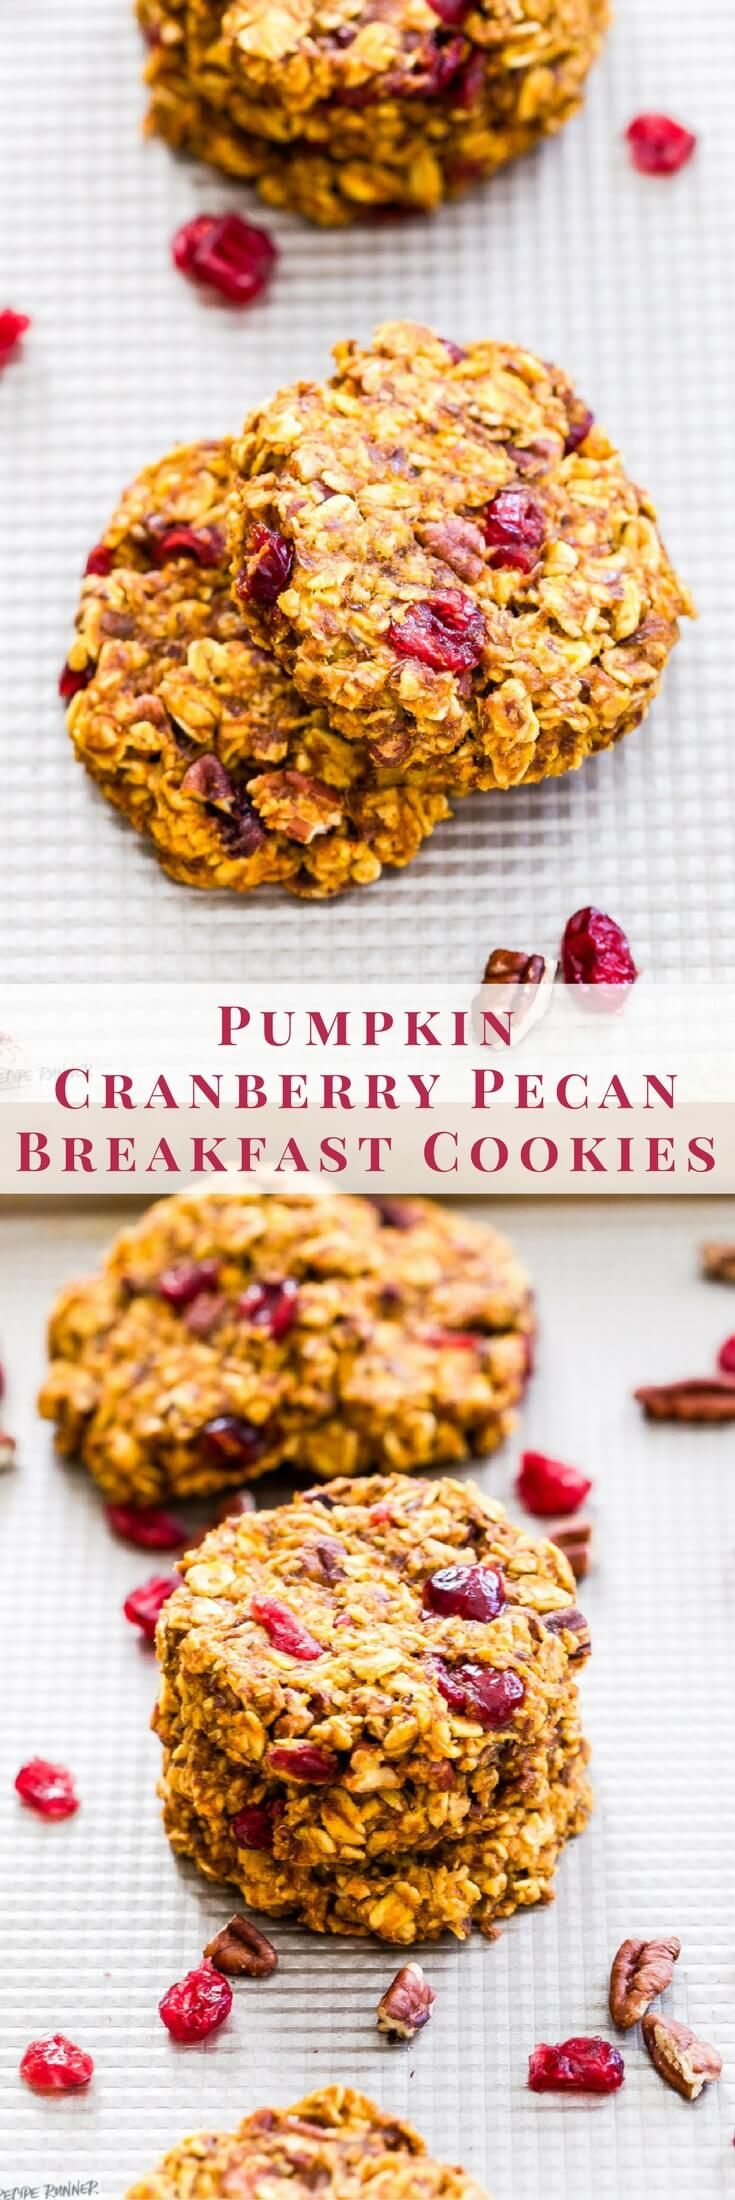 Pumpkin Cranberry Pecan Breakfast Cookies are great for a grab-and-go breakfast, post workout refueling or a healthy snack or dessert. Full of protein, carbs and plenty of pumpkin spice! {Gluten-Free and Vegan}